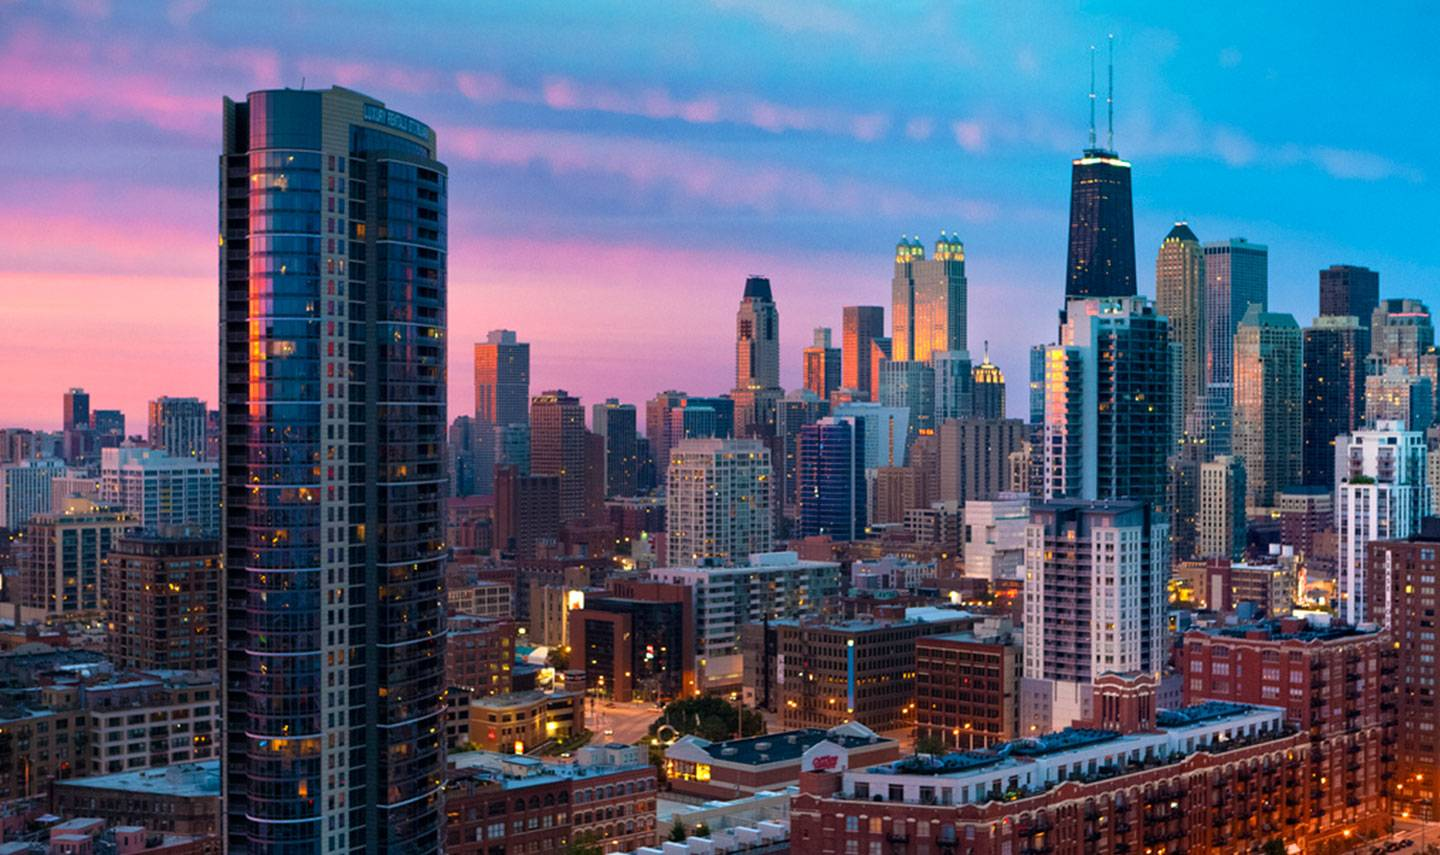 20170210a The History of the River North District in Chicago